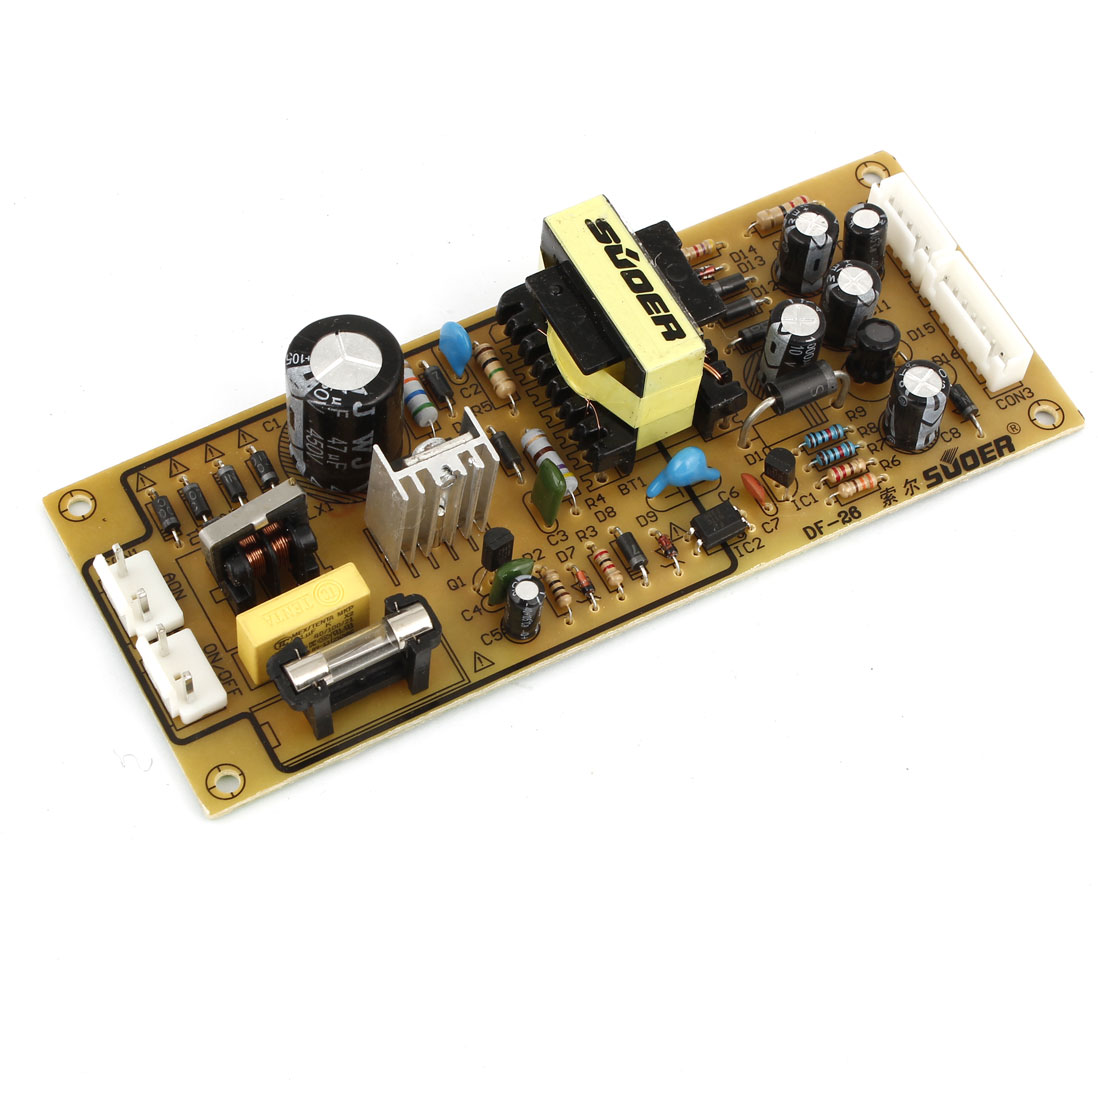 Universal Spare Part Power Supply Board 14.5 x 5.5 x 2.5cm for DVD Players